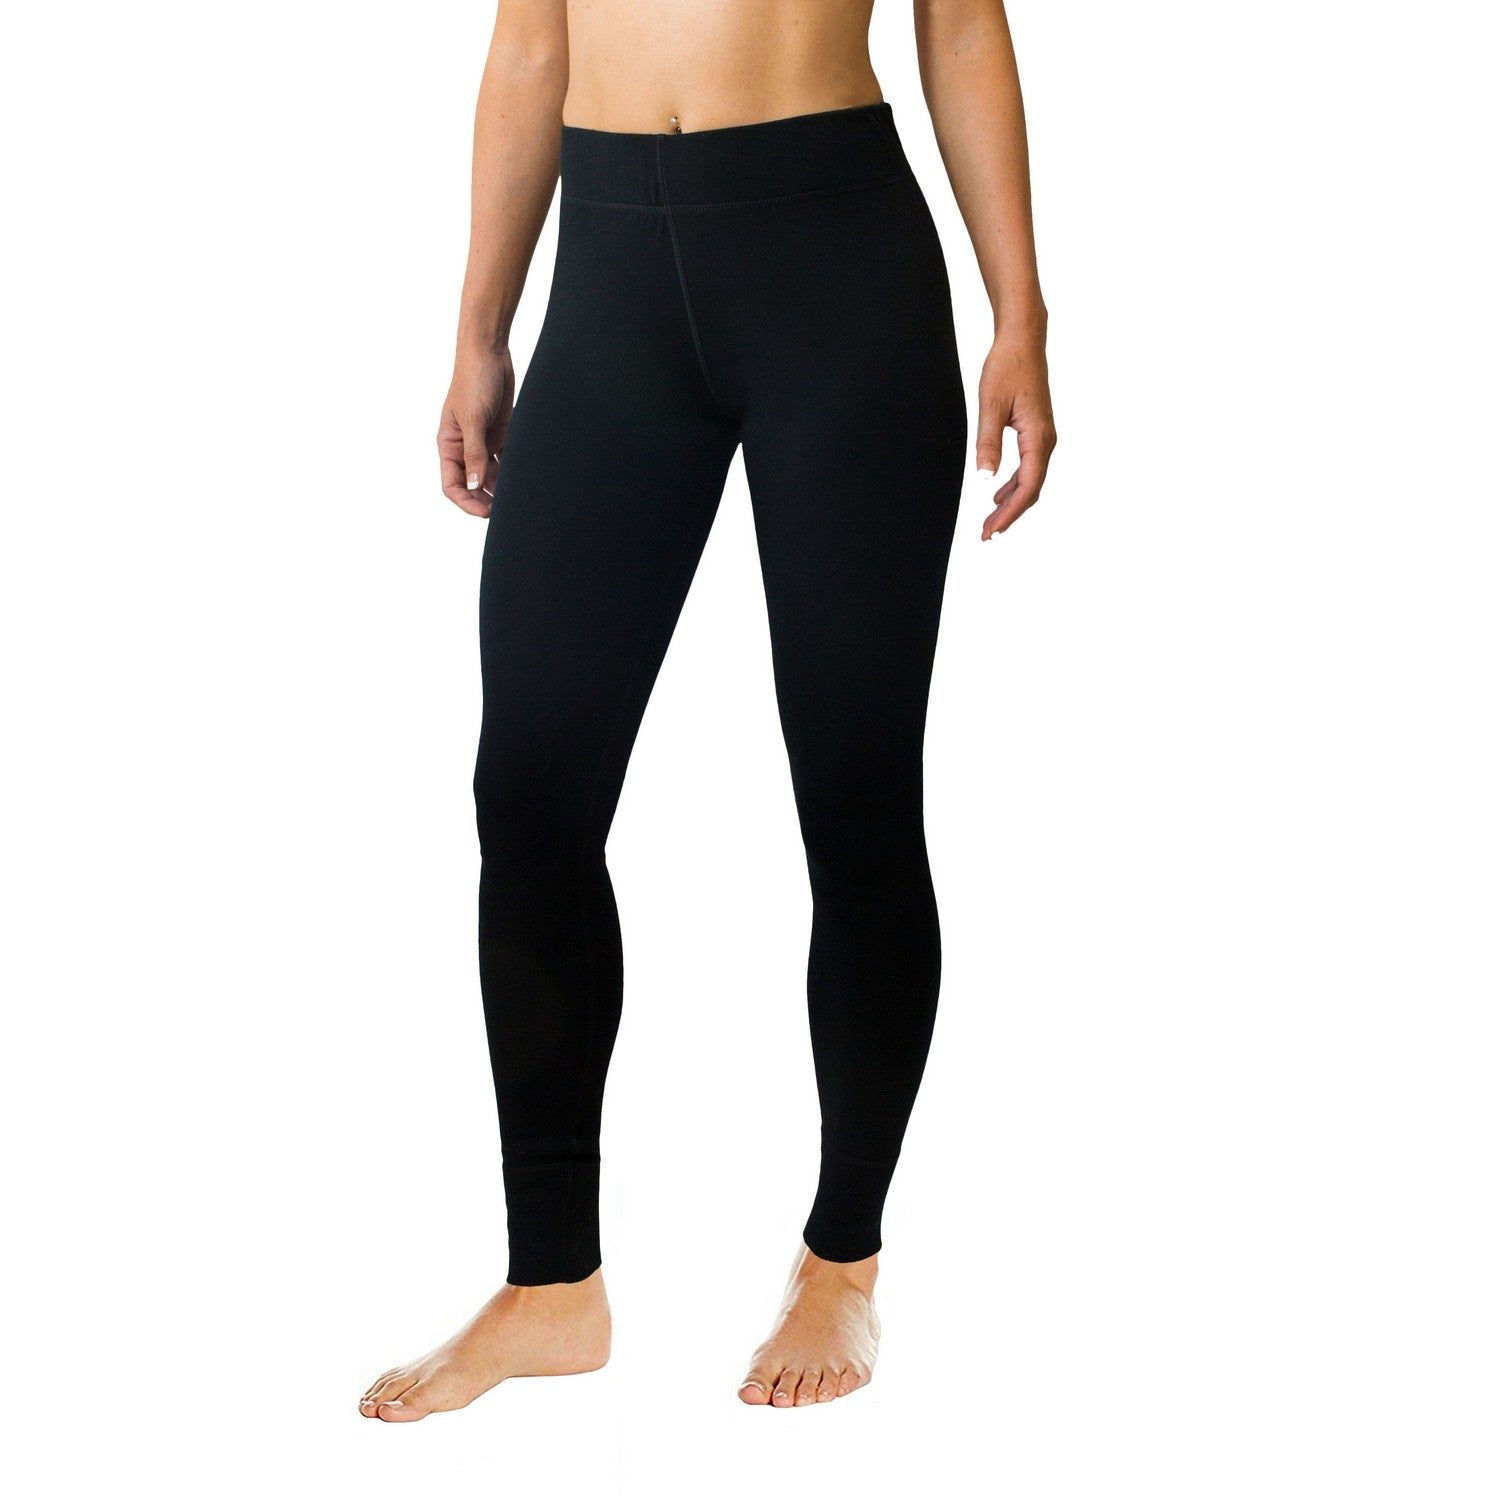 Woolx Women's Nora Heavyweight Bottoms - Black